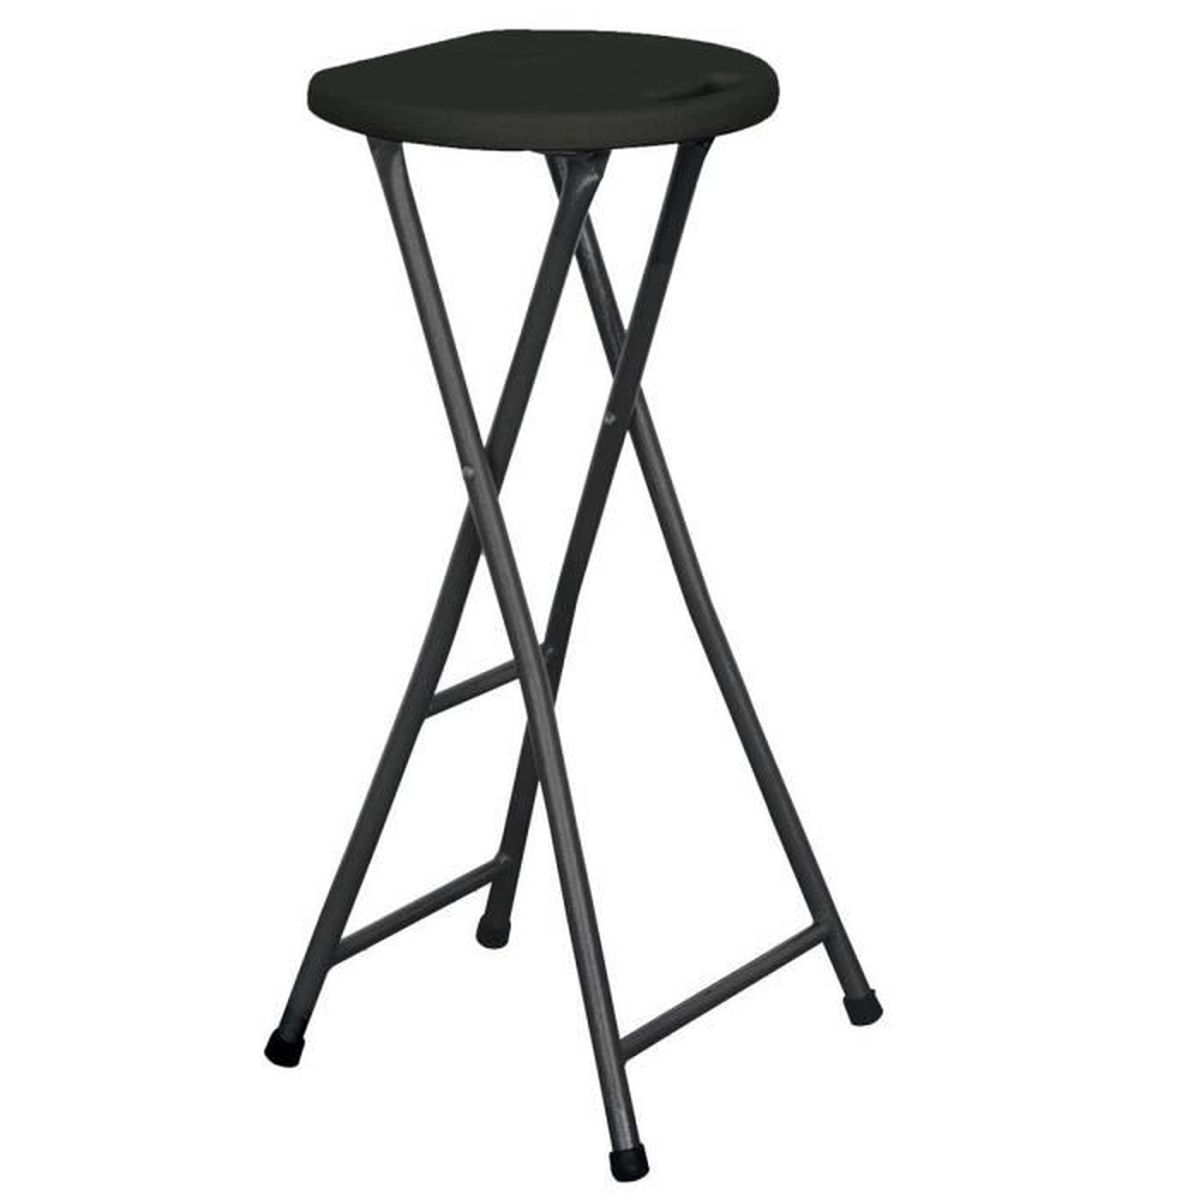 tabouret pliant de bar noir achat vente tabouret noir cdiscount. Black Bedroom Furniture Sets. Home Design Ideas